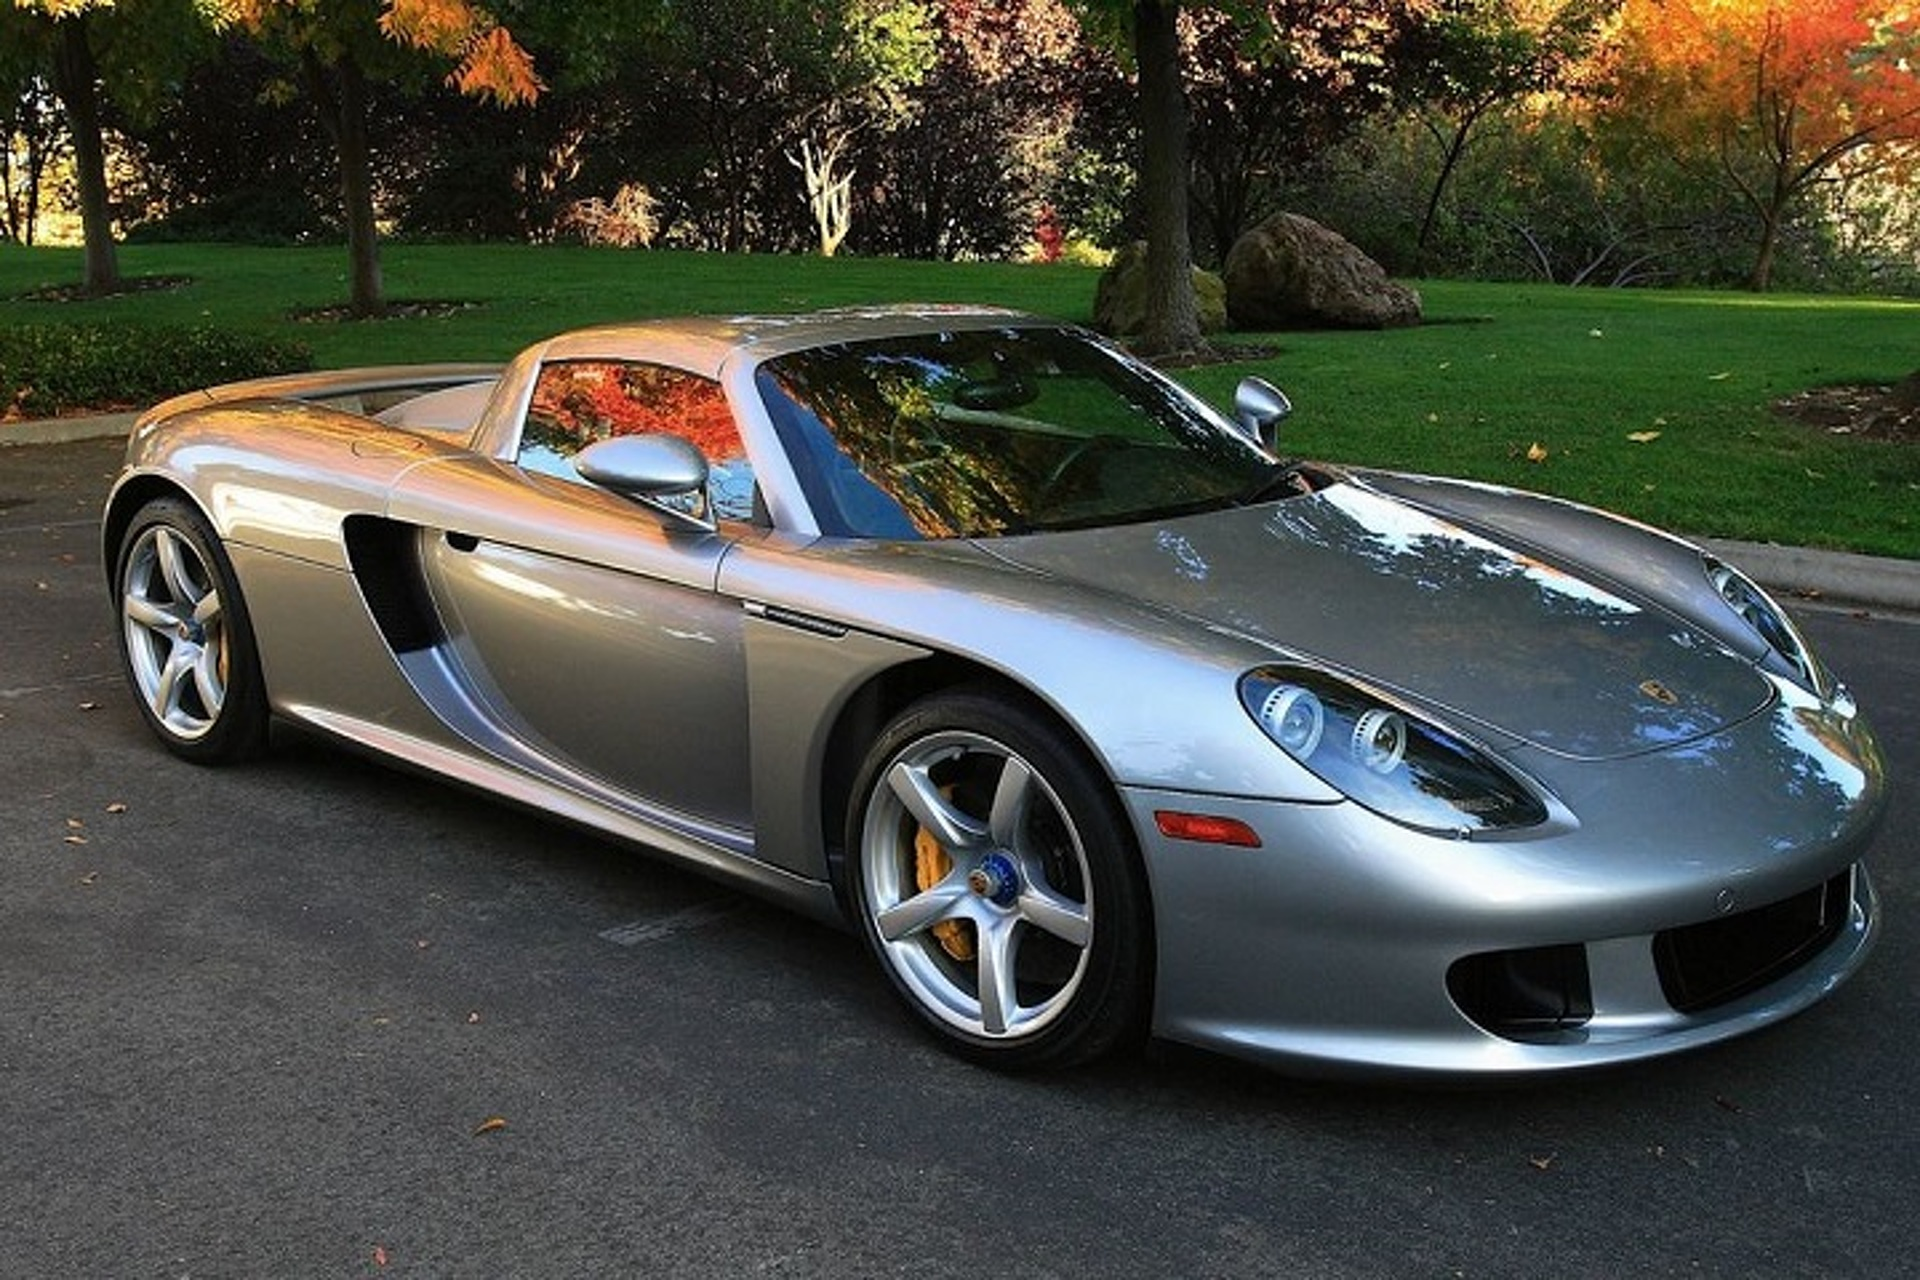 Ken Griffey Jr. Loves Speed, Owns a Porsche Carrera GT Sports Car